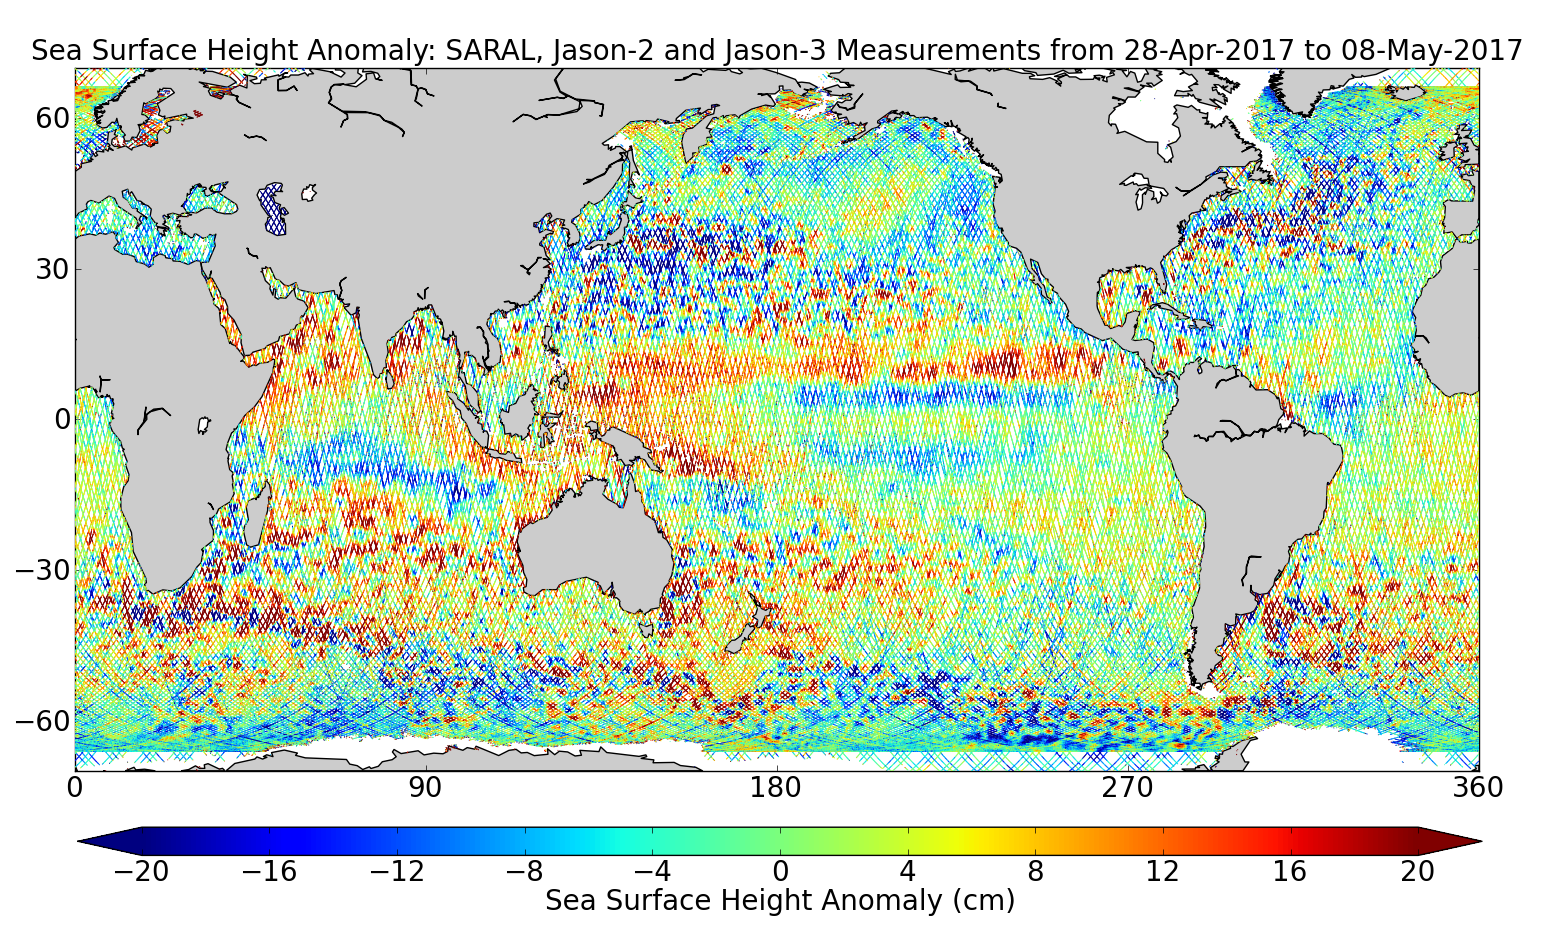 Sea Surface Height Anomaly: SARAL, Jason-2 and Jason-3 Measurements from 28-Apr-2017 to 08-May-2017